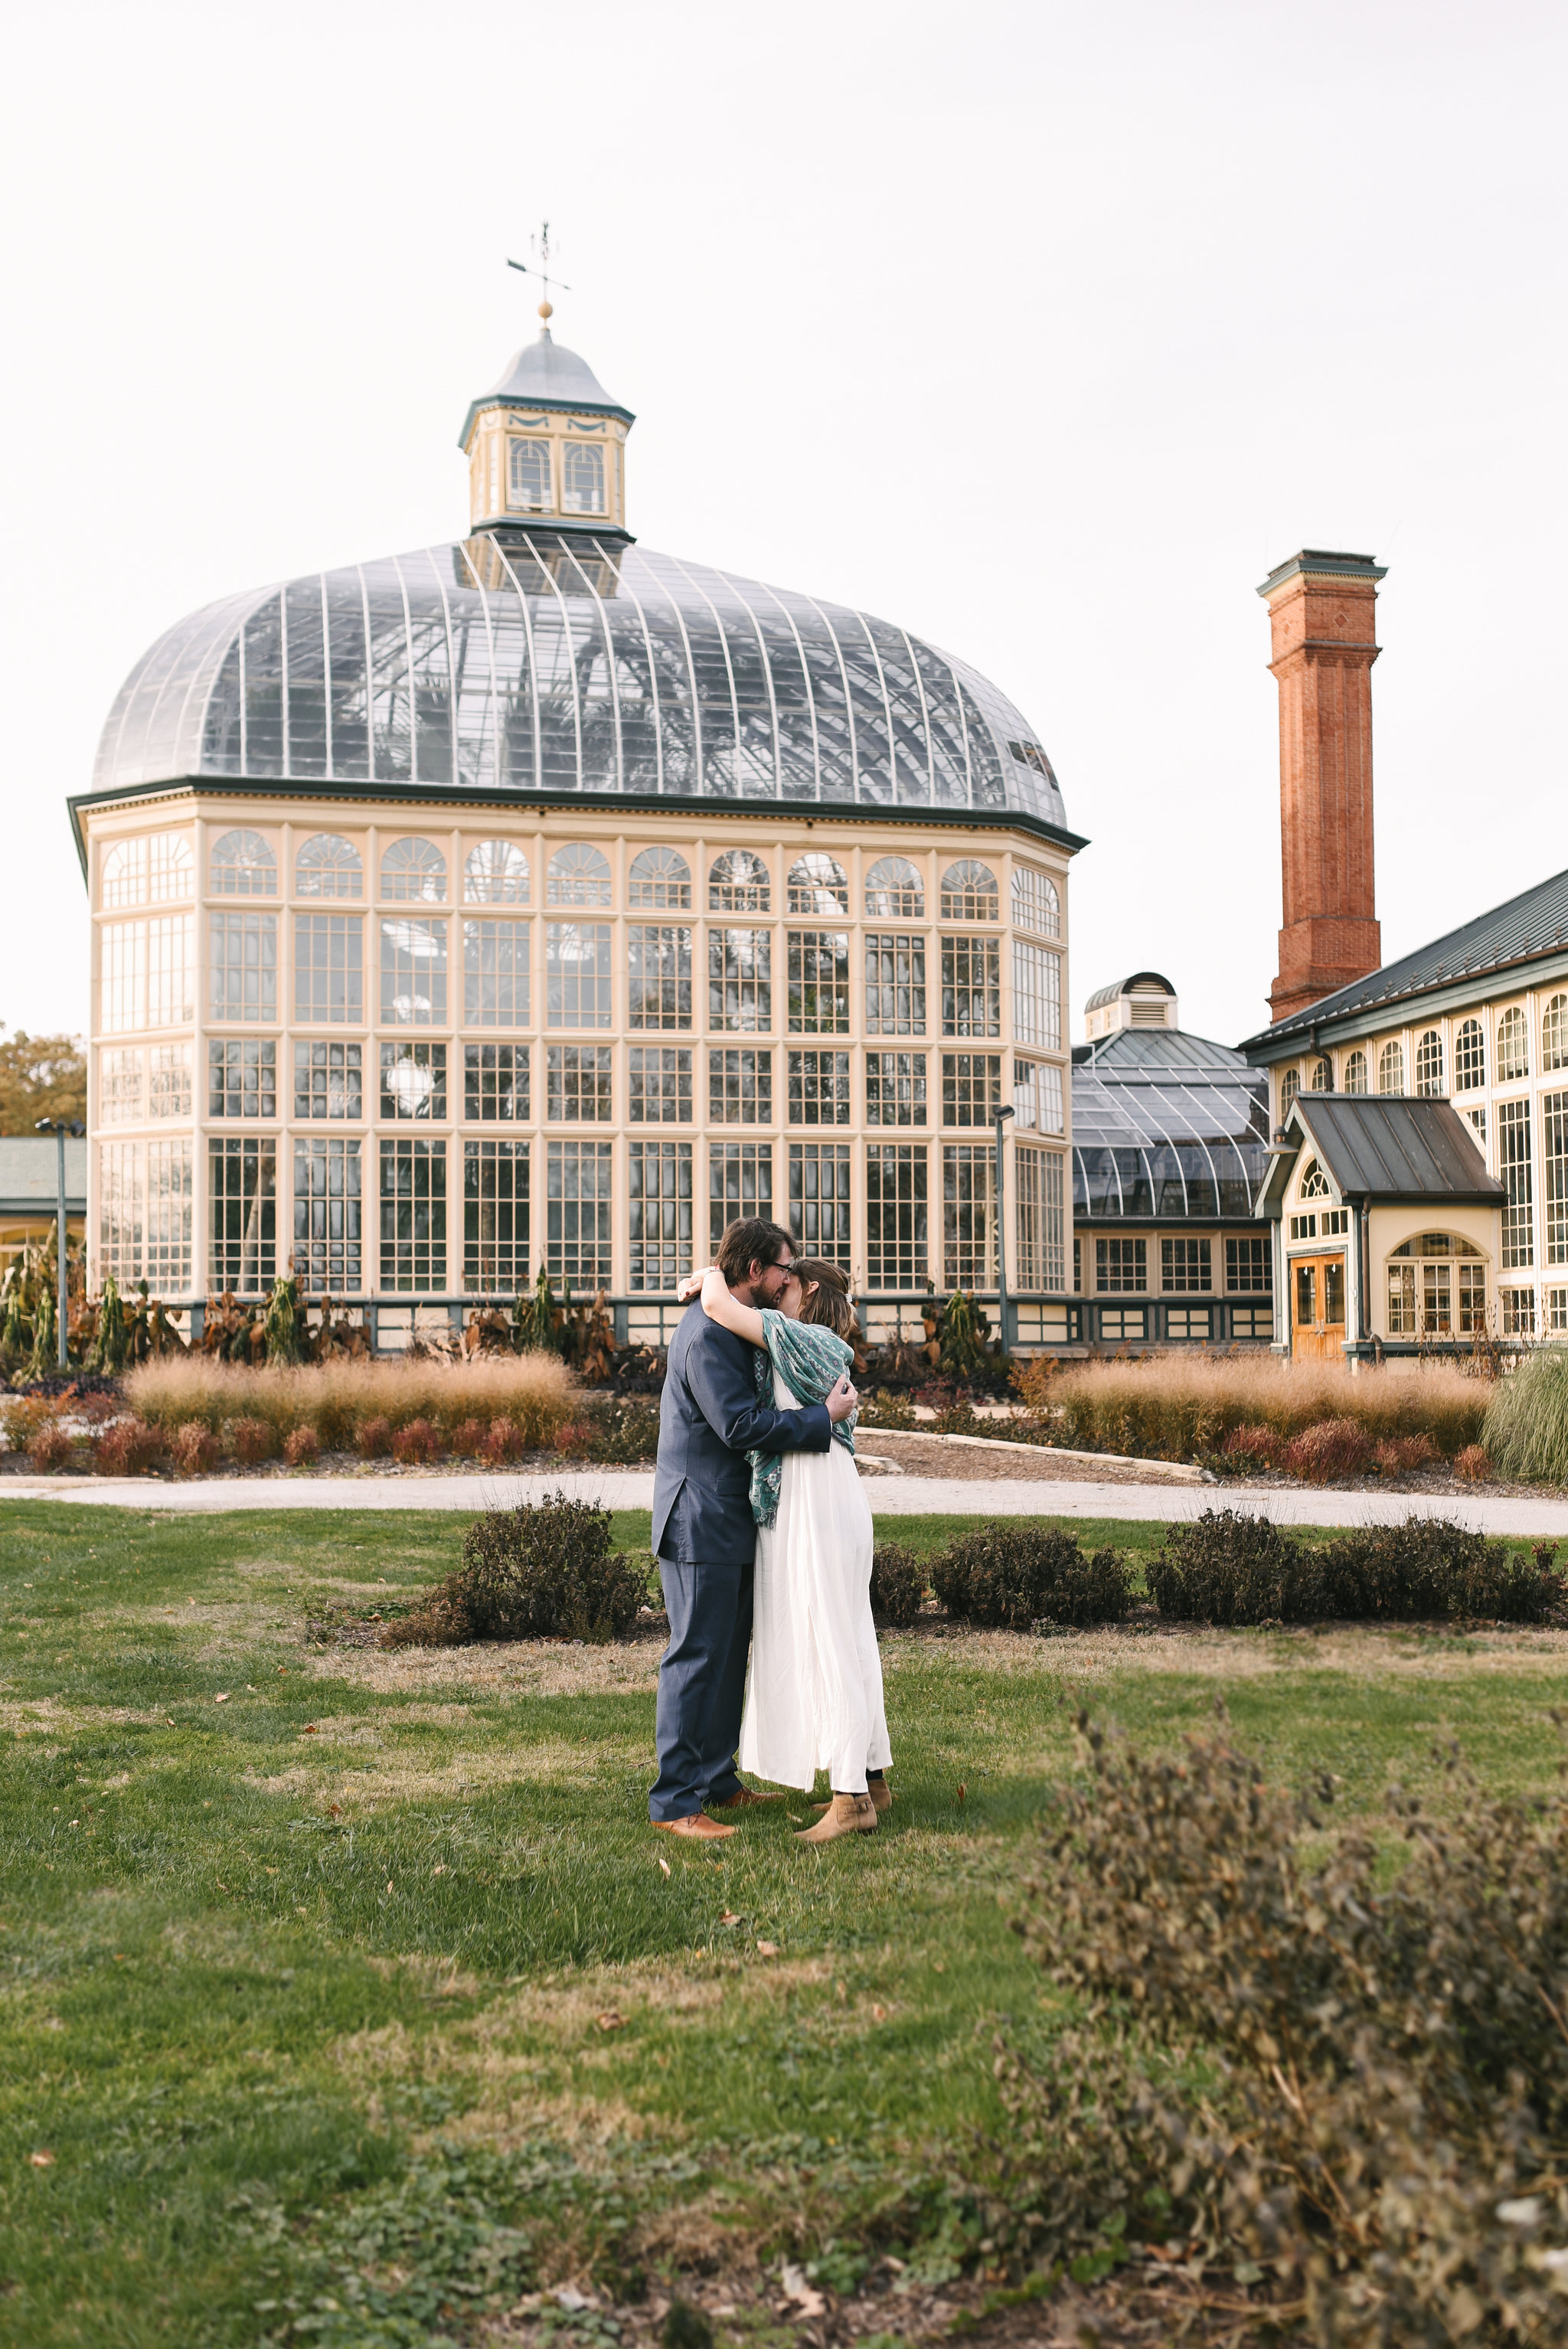 Rawlings Conservatory, Druid Hill Park, Intimate Wedding, Nature, Baltimore Wedding Photographer, Romantic, Classic, Bride and Groom Kissing Outside Venue